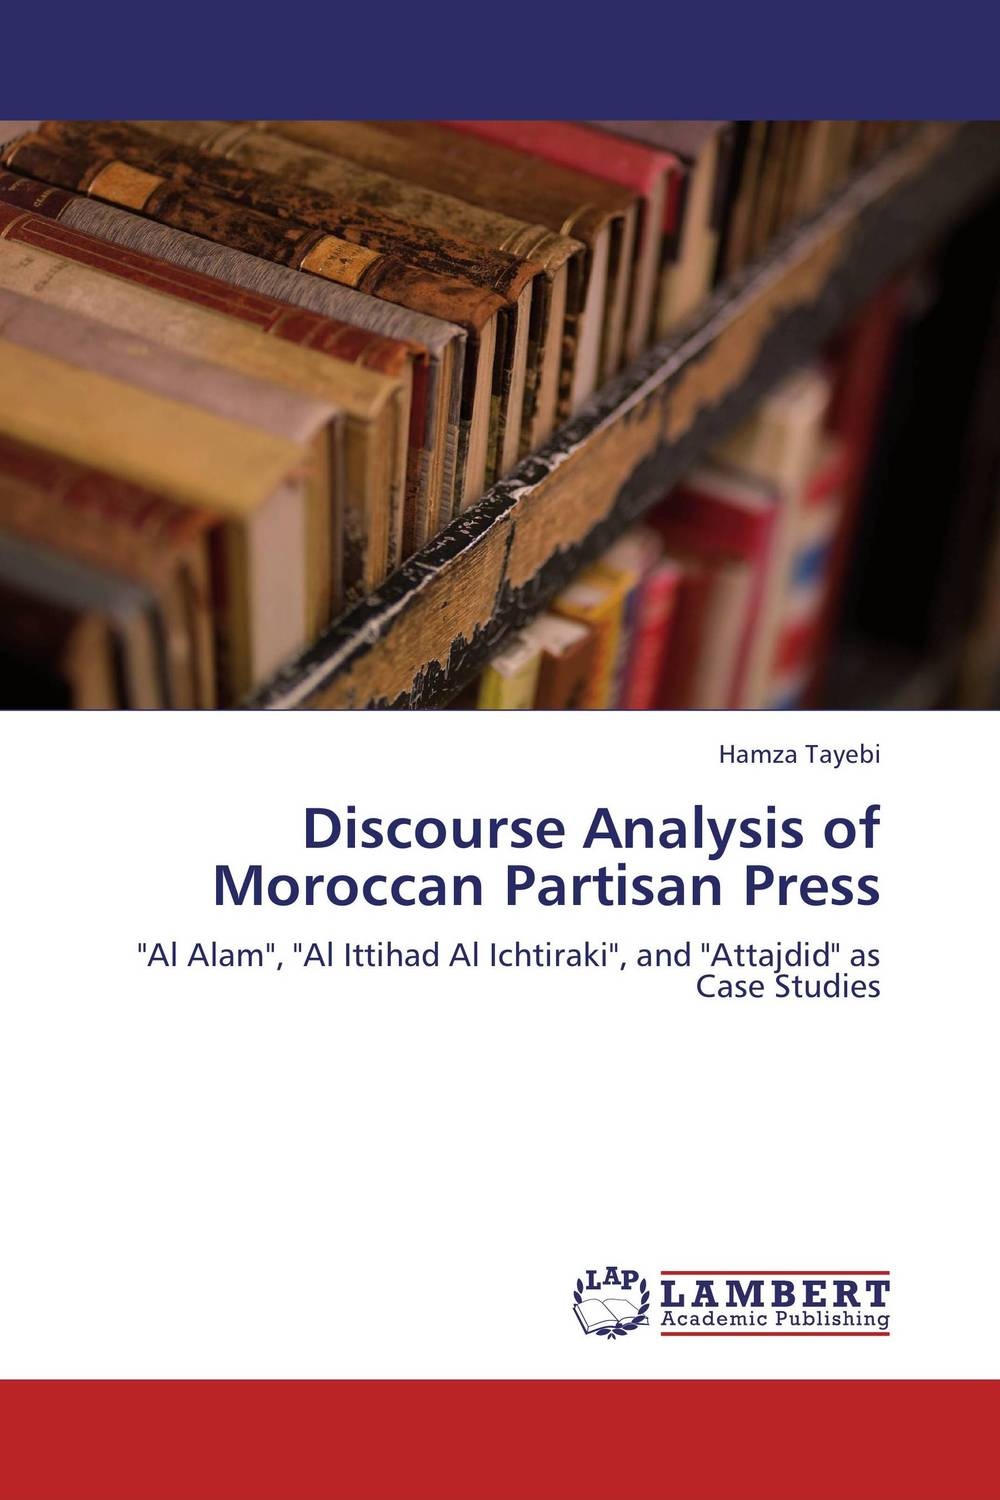 Discourse Analysis of Moroccan Partisan Press communities of discourse – ideology